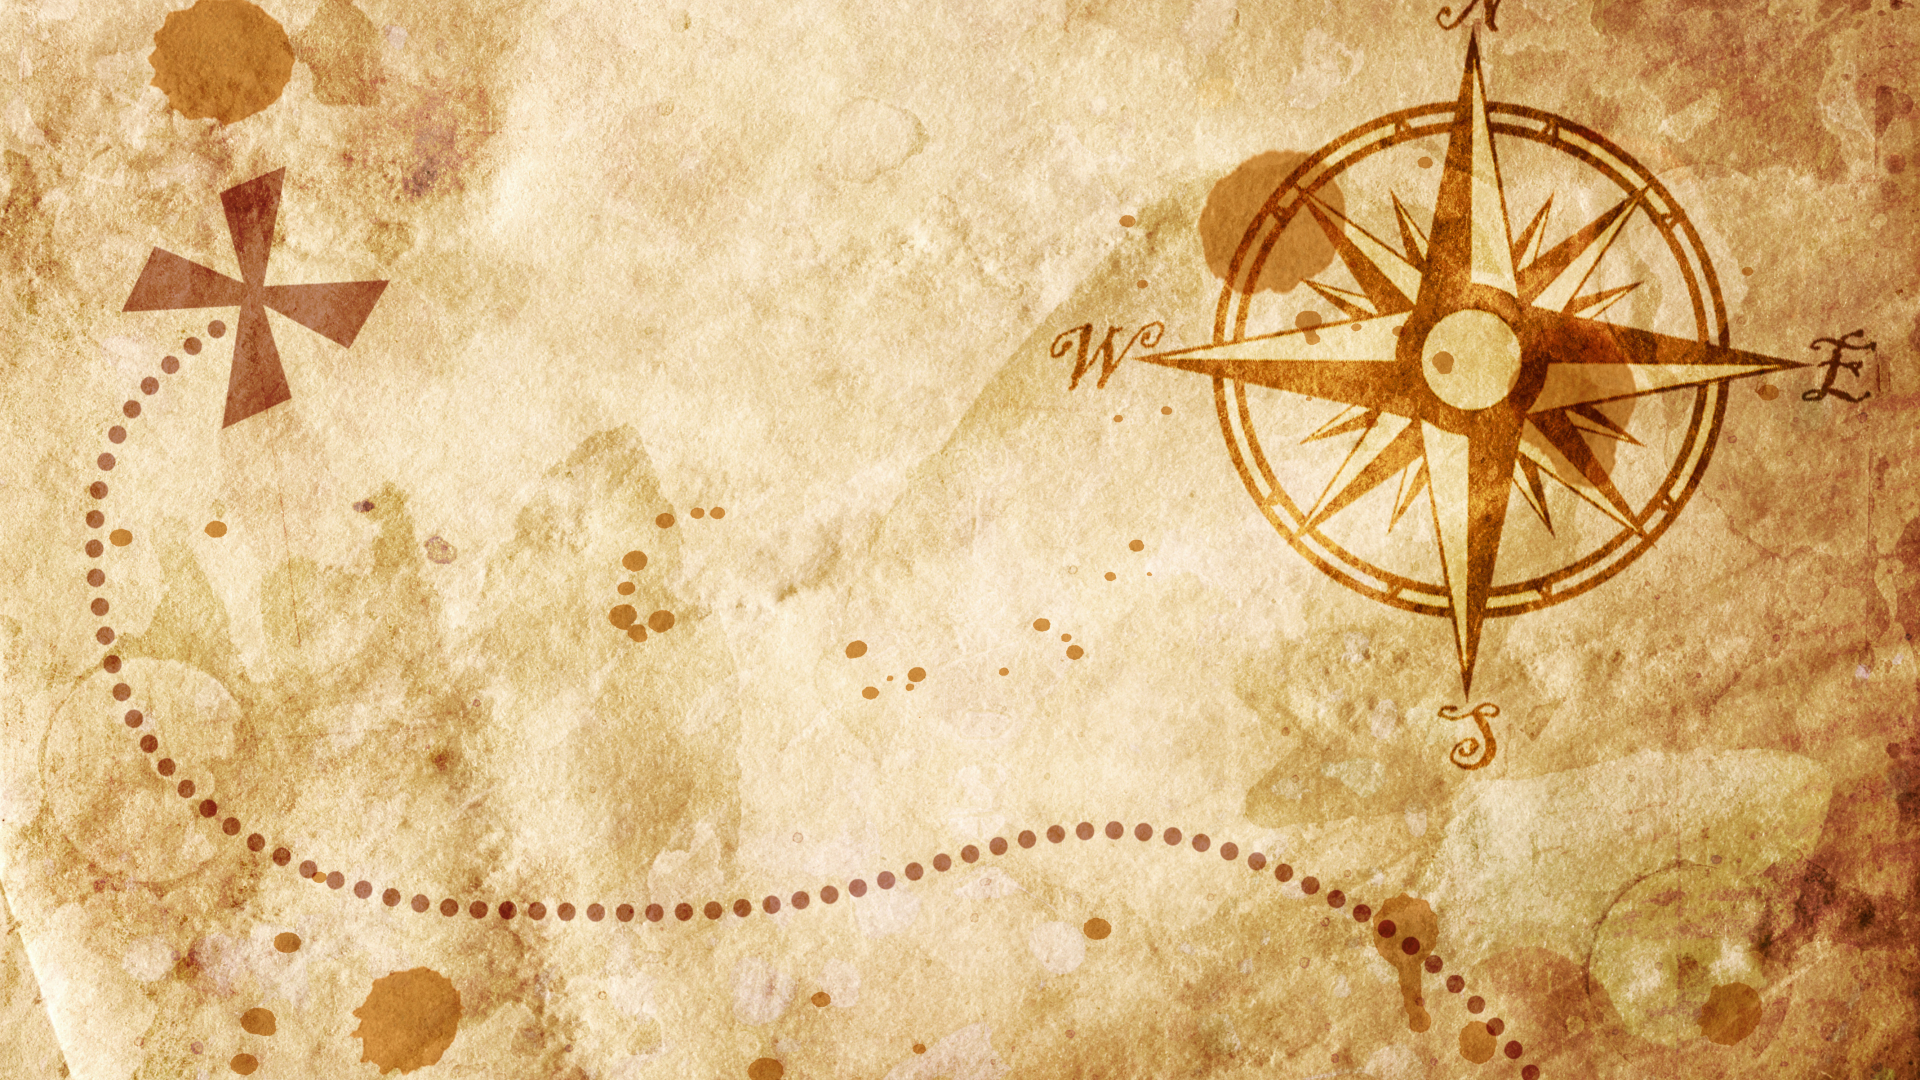 Free download bigstock old map with a compass on it 29604053